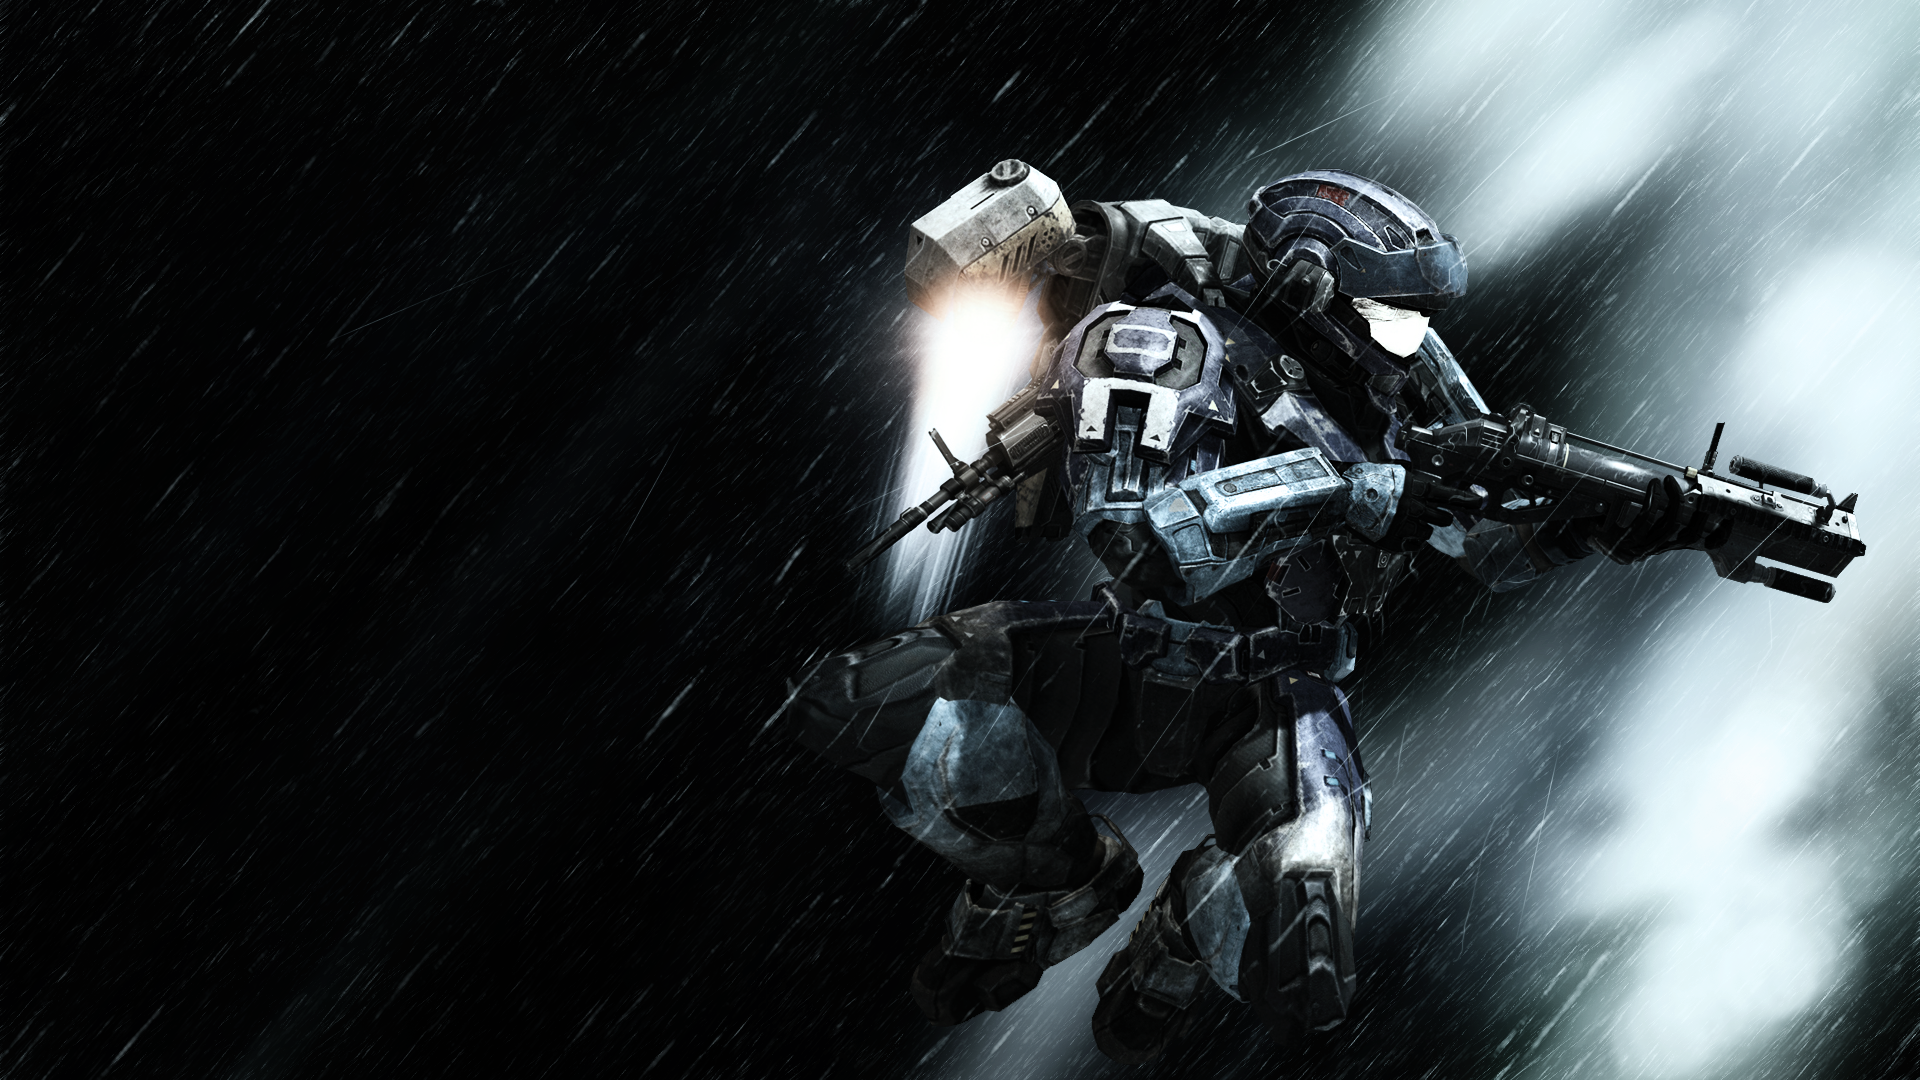 45 Halo: Reach HD Wallpapers | Backgrounds - Wallpaper Abyss